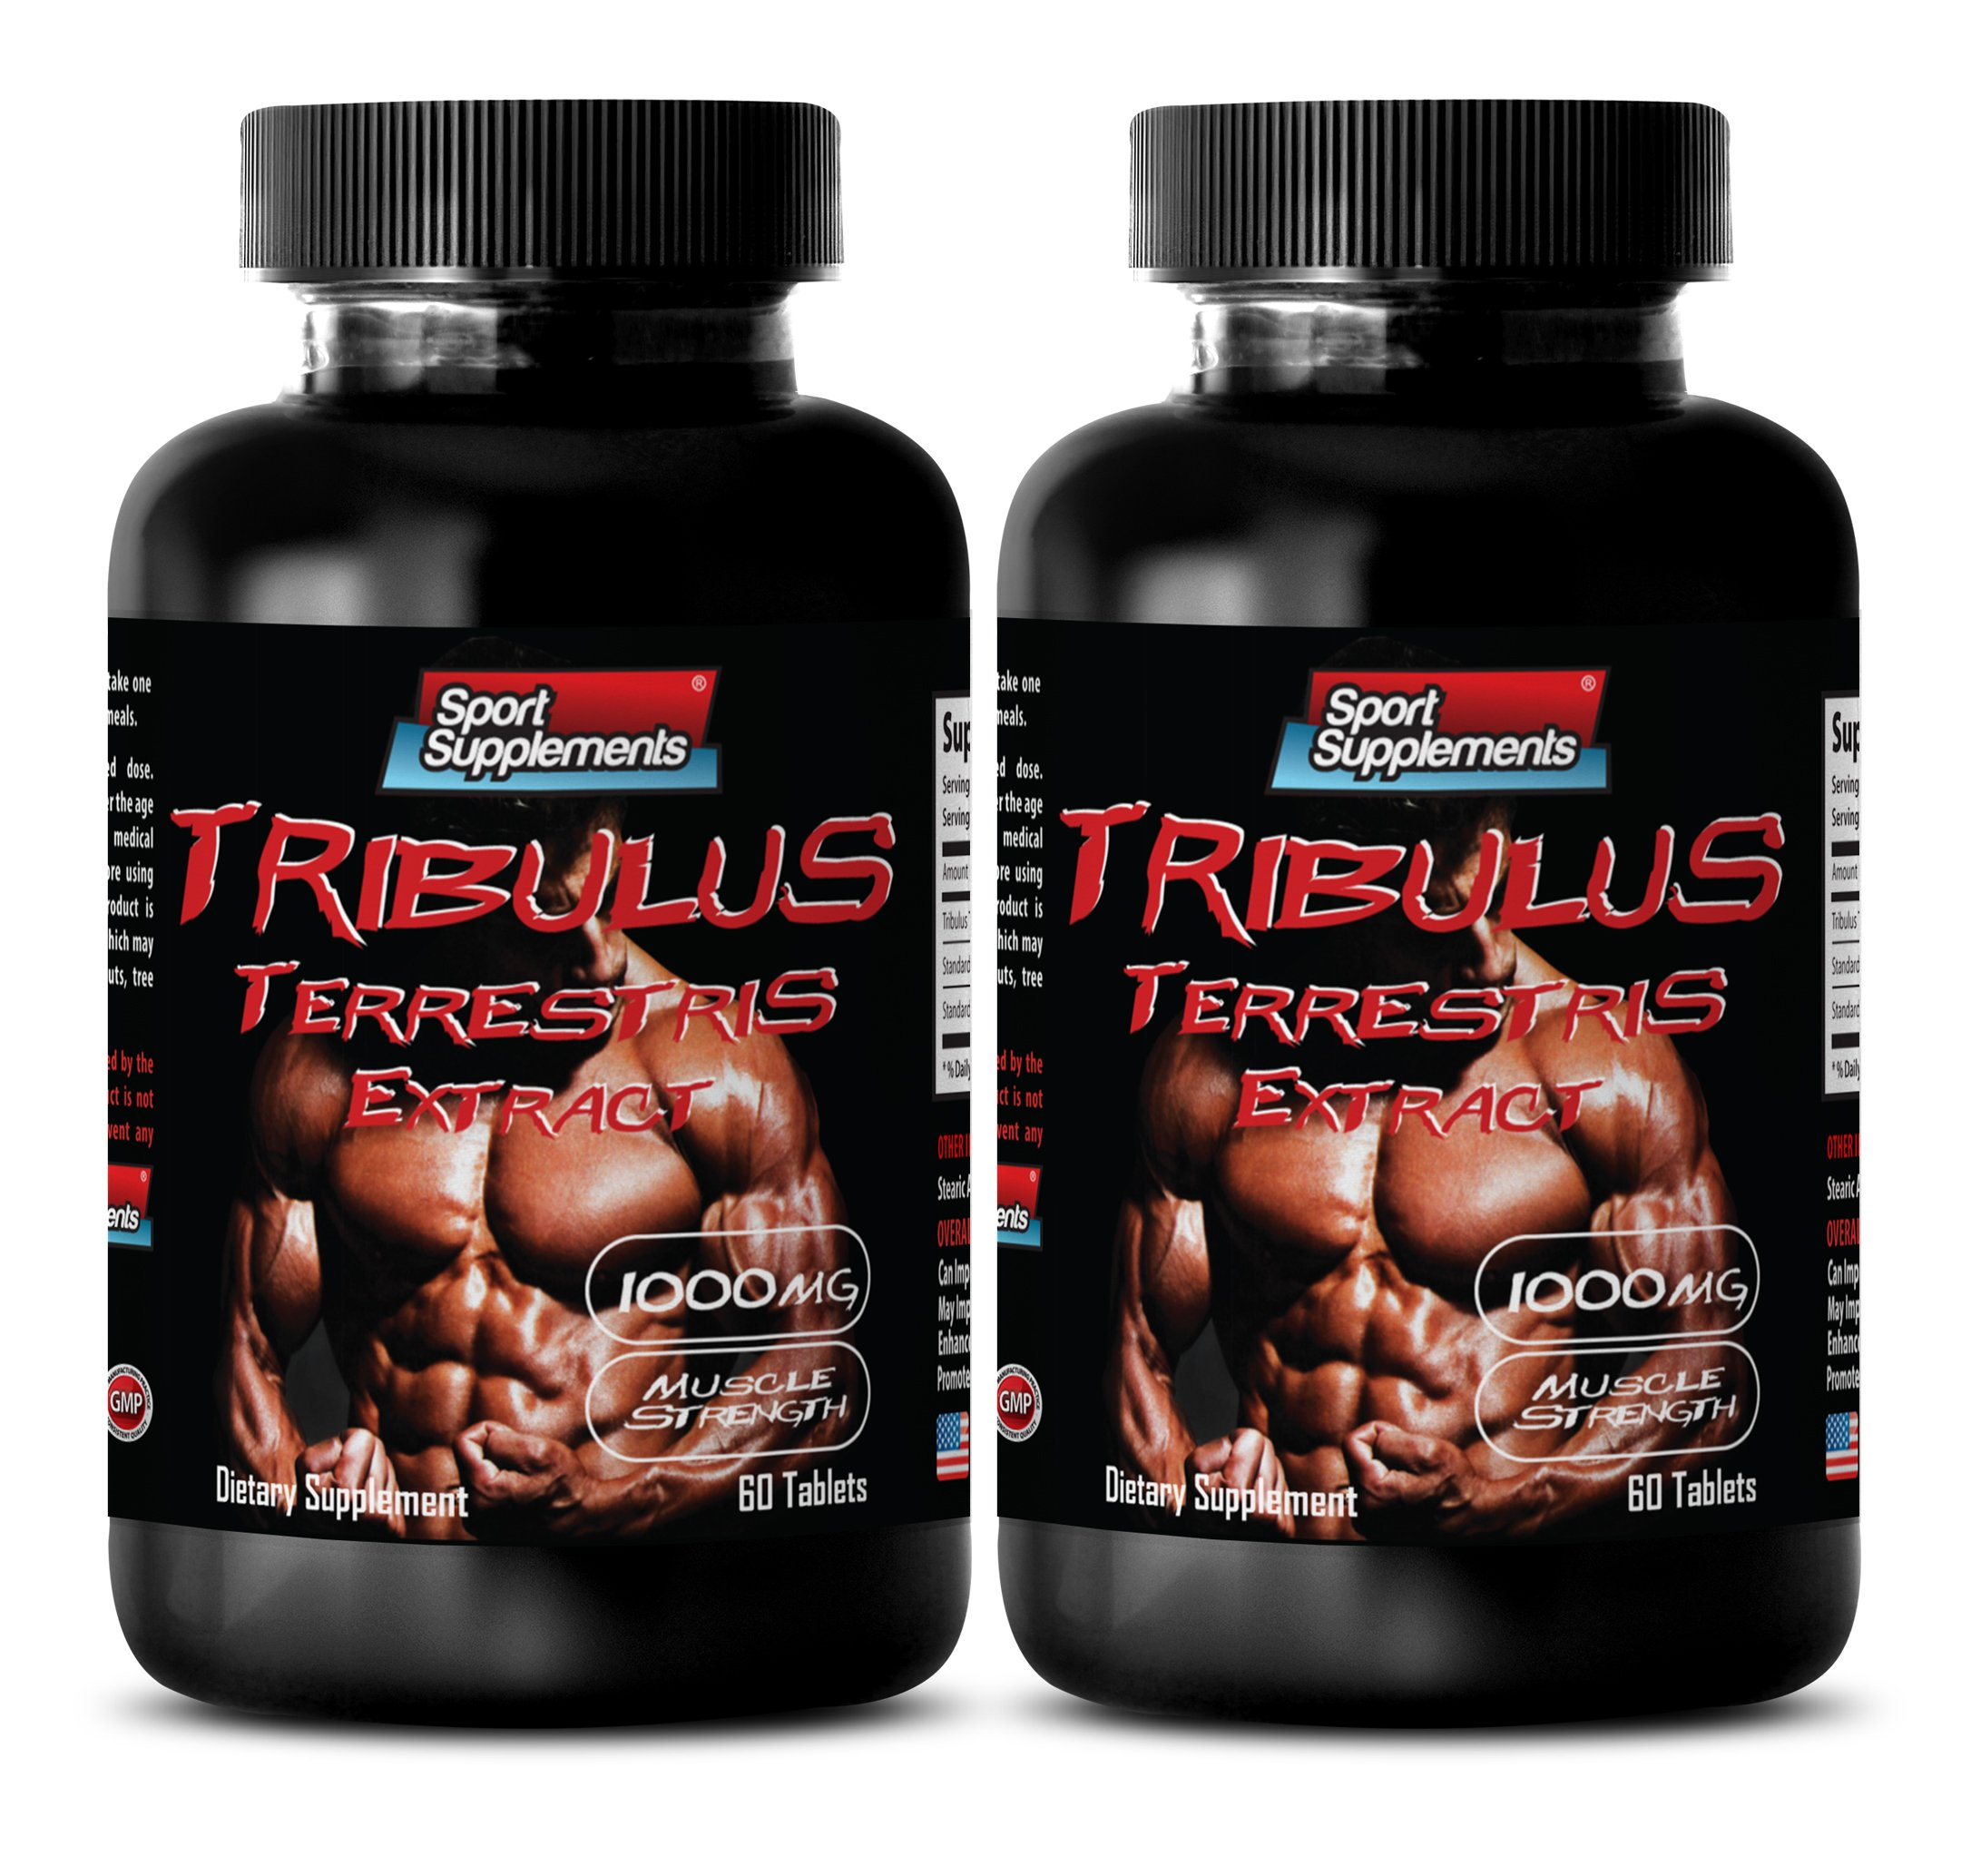 Tribulus terrestris - TRIBULUS TERRESTRIS EXTRACT 1000mg with Standardized 400mg Natural Saponins - Sexual health - 2 Bottles 120 Tablets